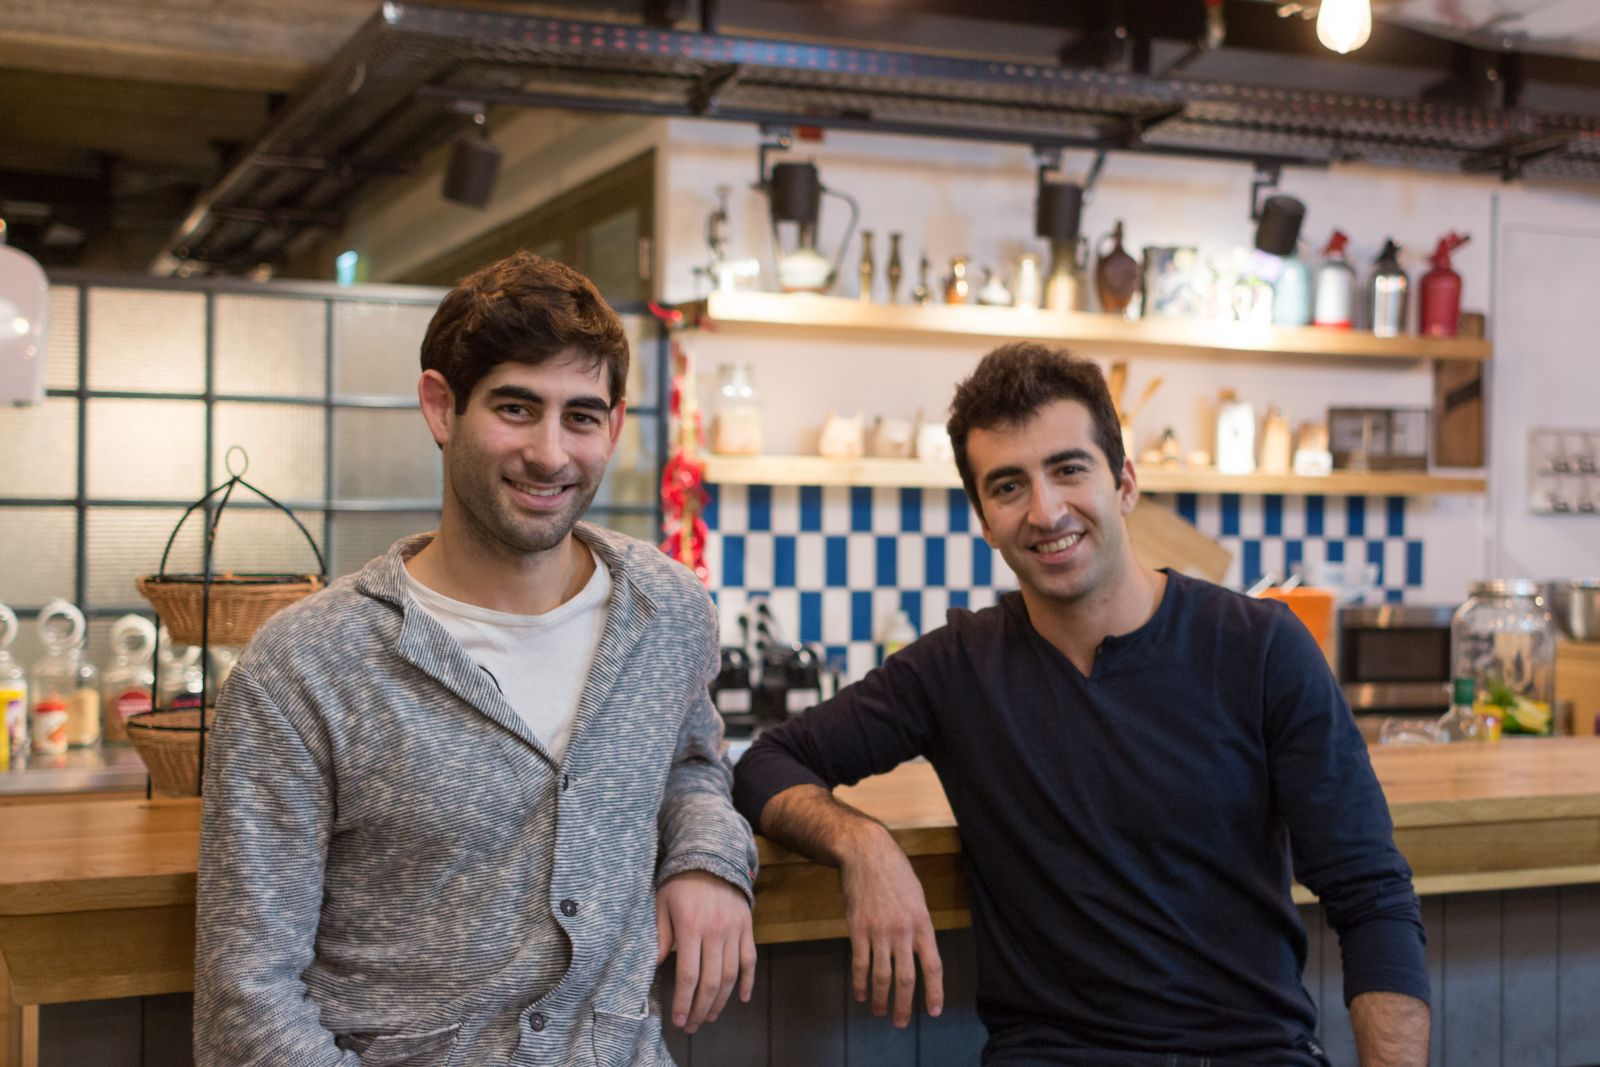 StoreSmarts cofounders Ilai Fallach, left, and Eyal Ben-Eliyahu. Photo: courtesy